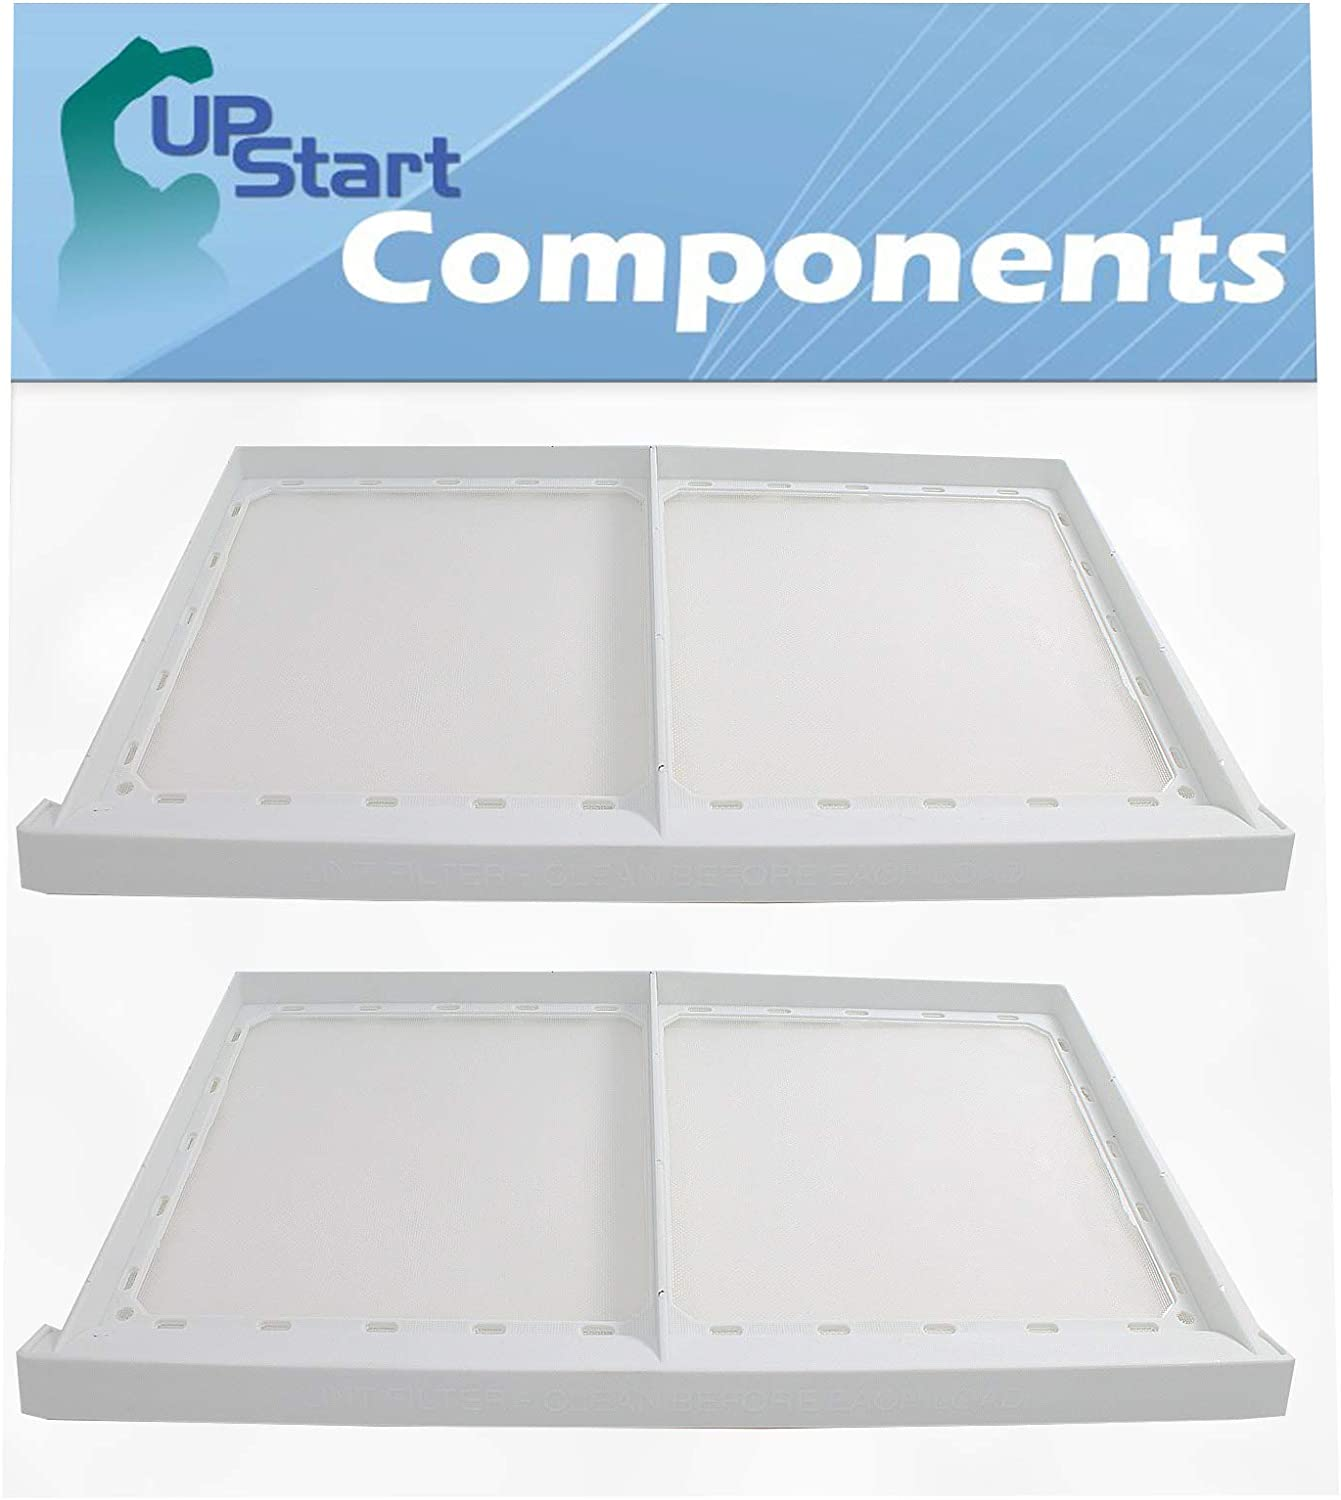 Compatible with 131450300 Lint Screen Trap Catcher 2-Pack 131450300 Dryer Lint Filter Replacement for Kenmore//Sears 417.84152500